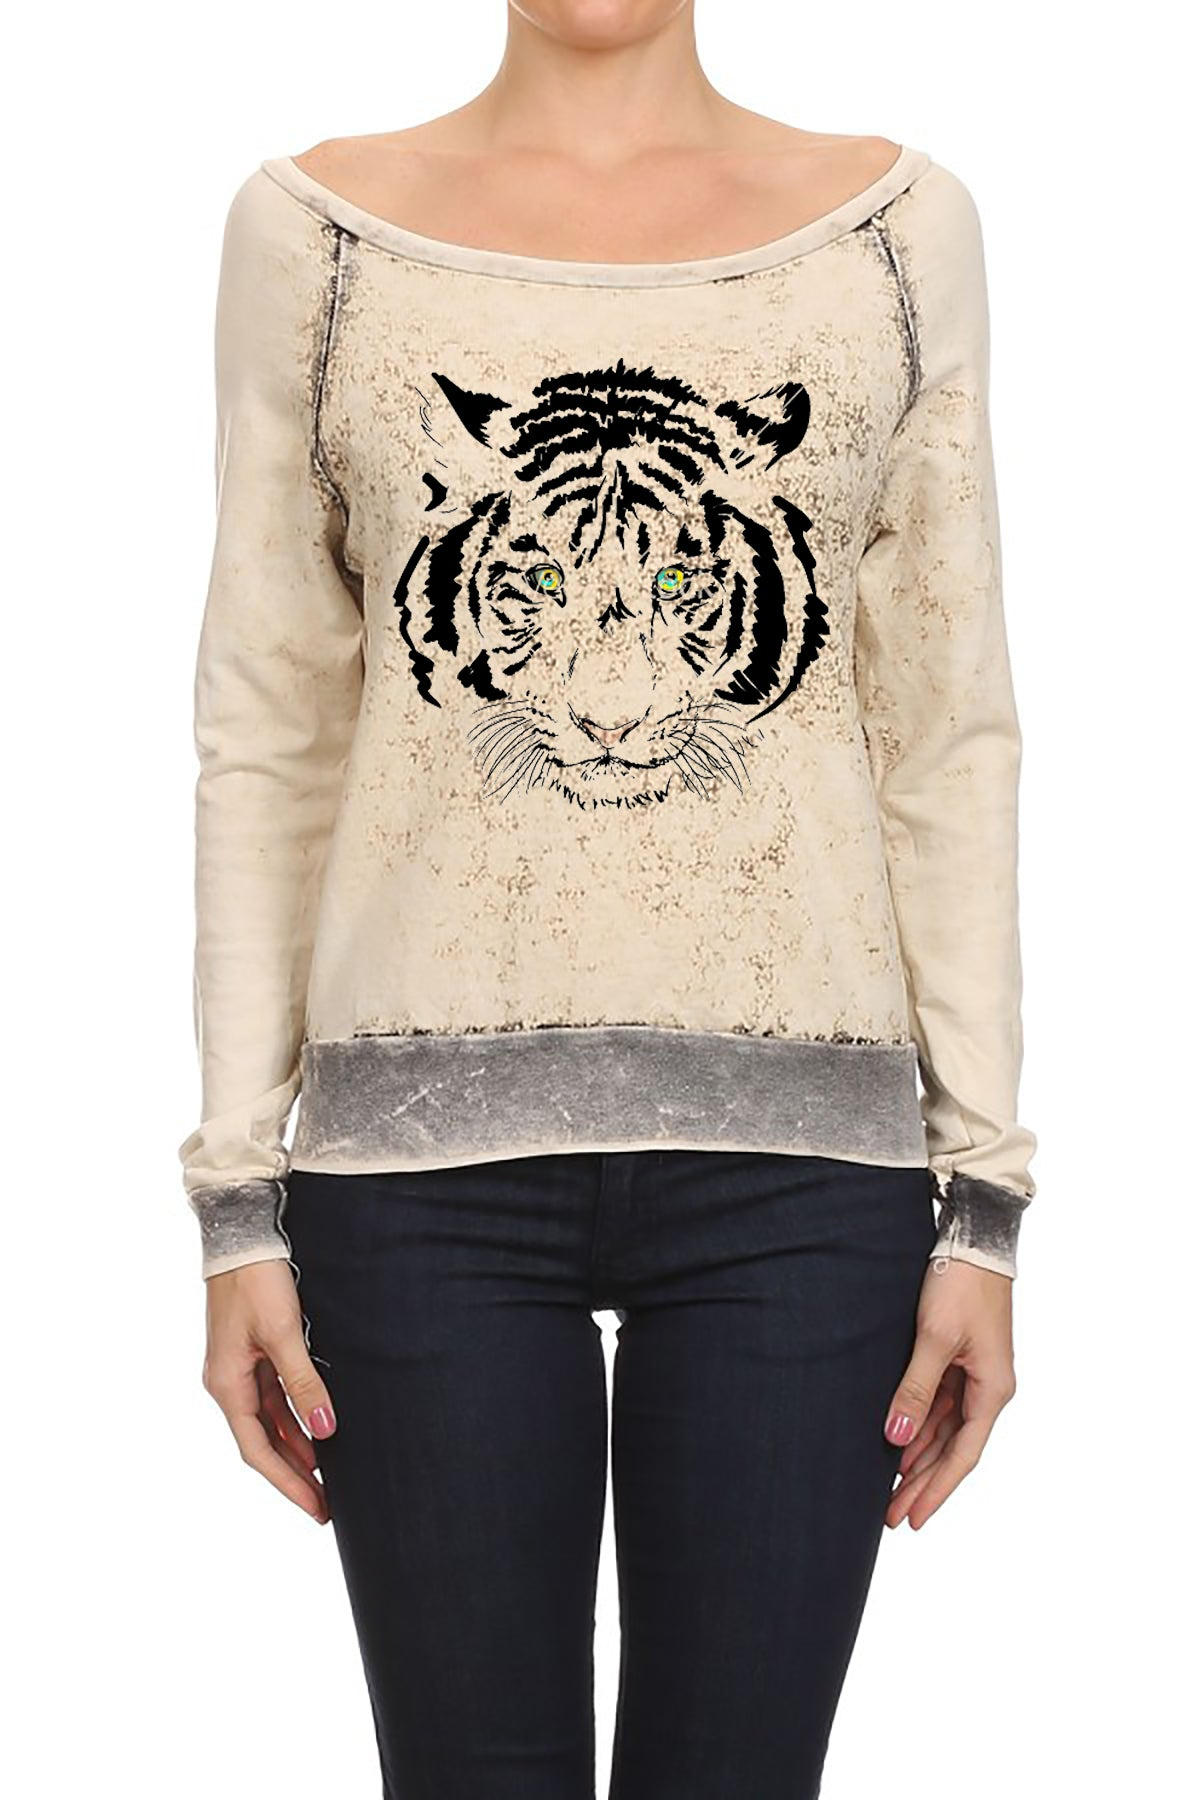 Tiger Women's Sweaters